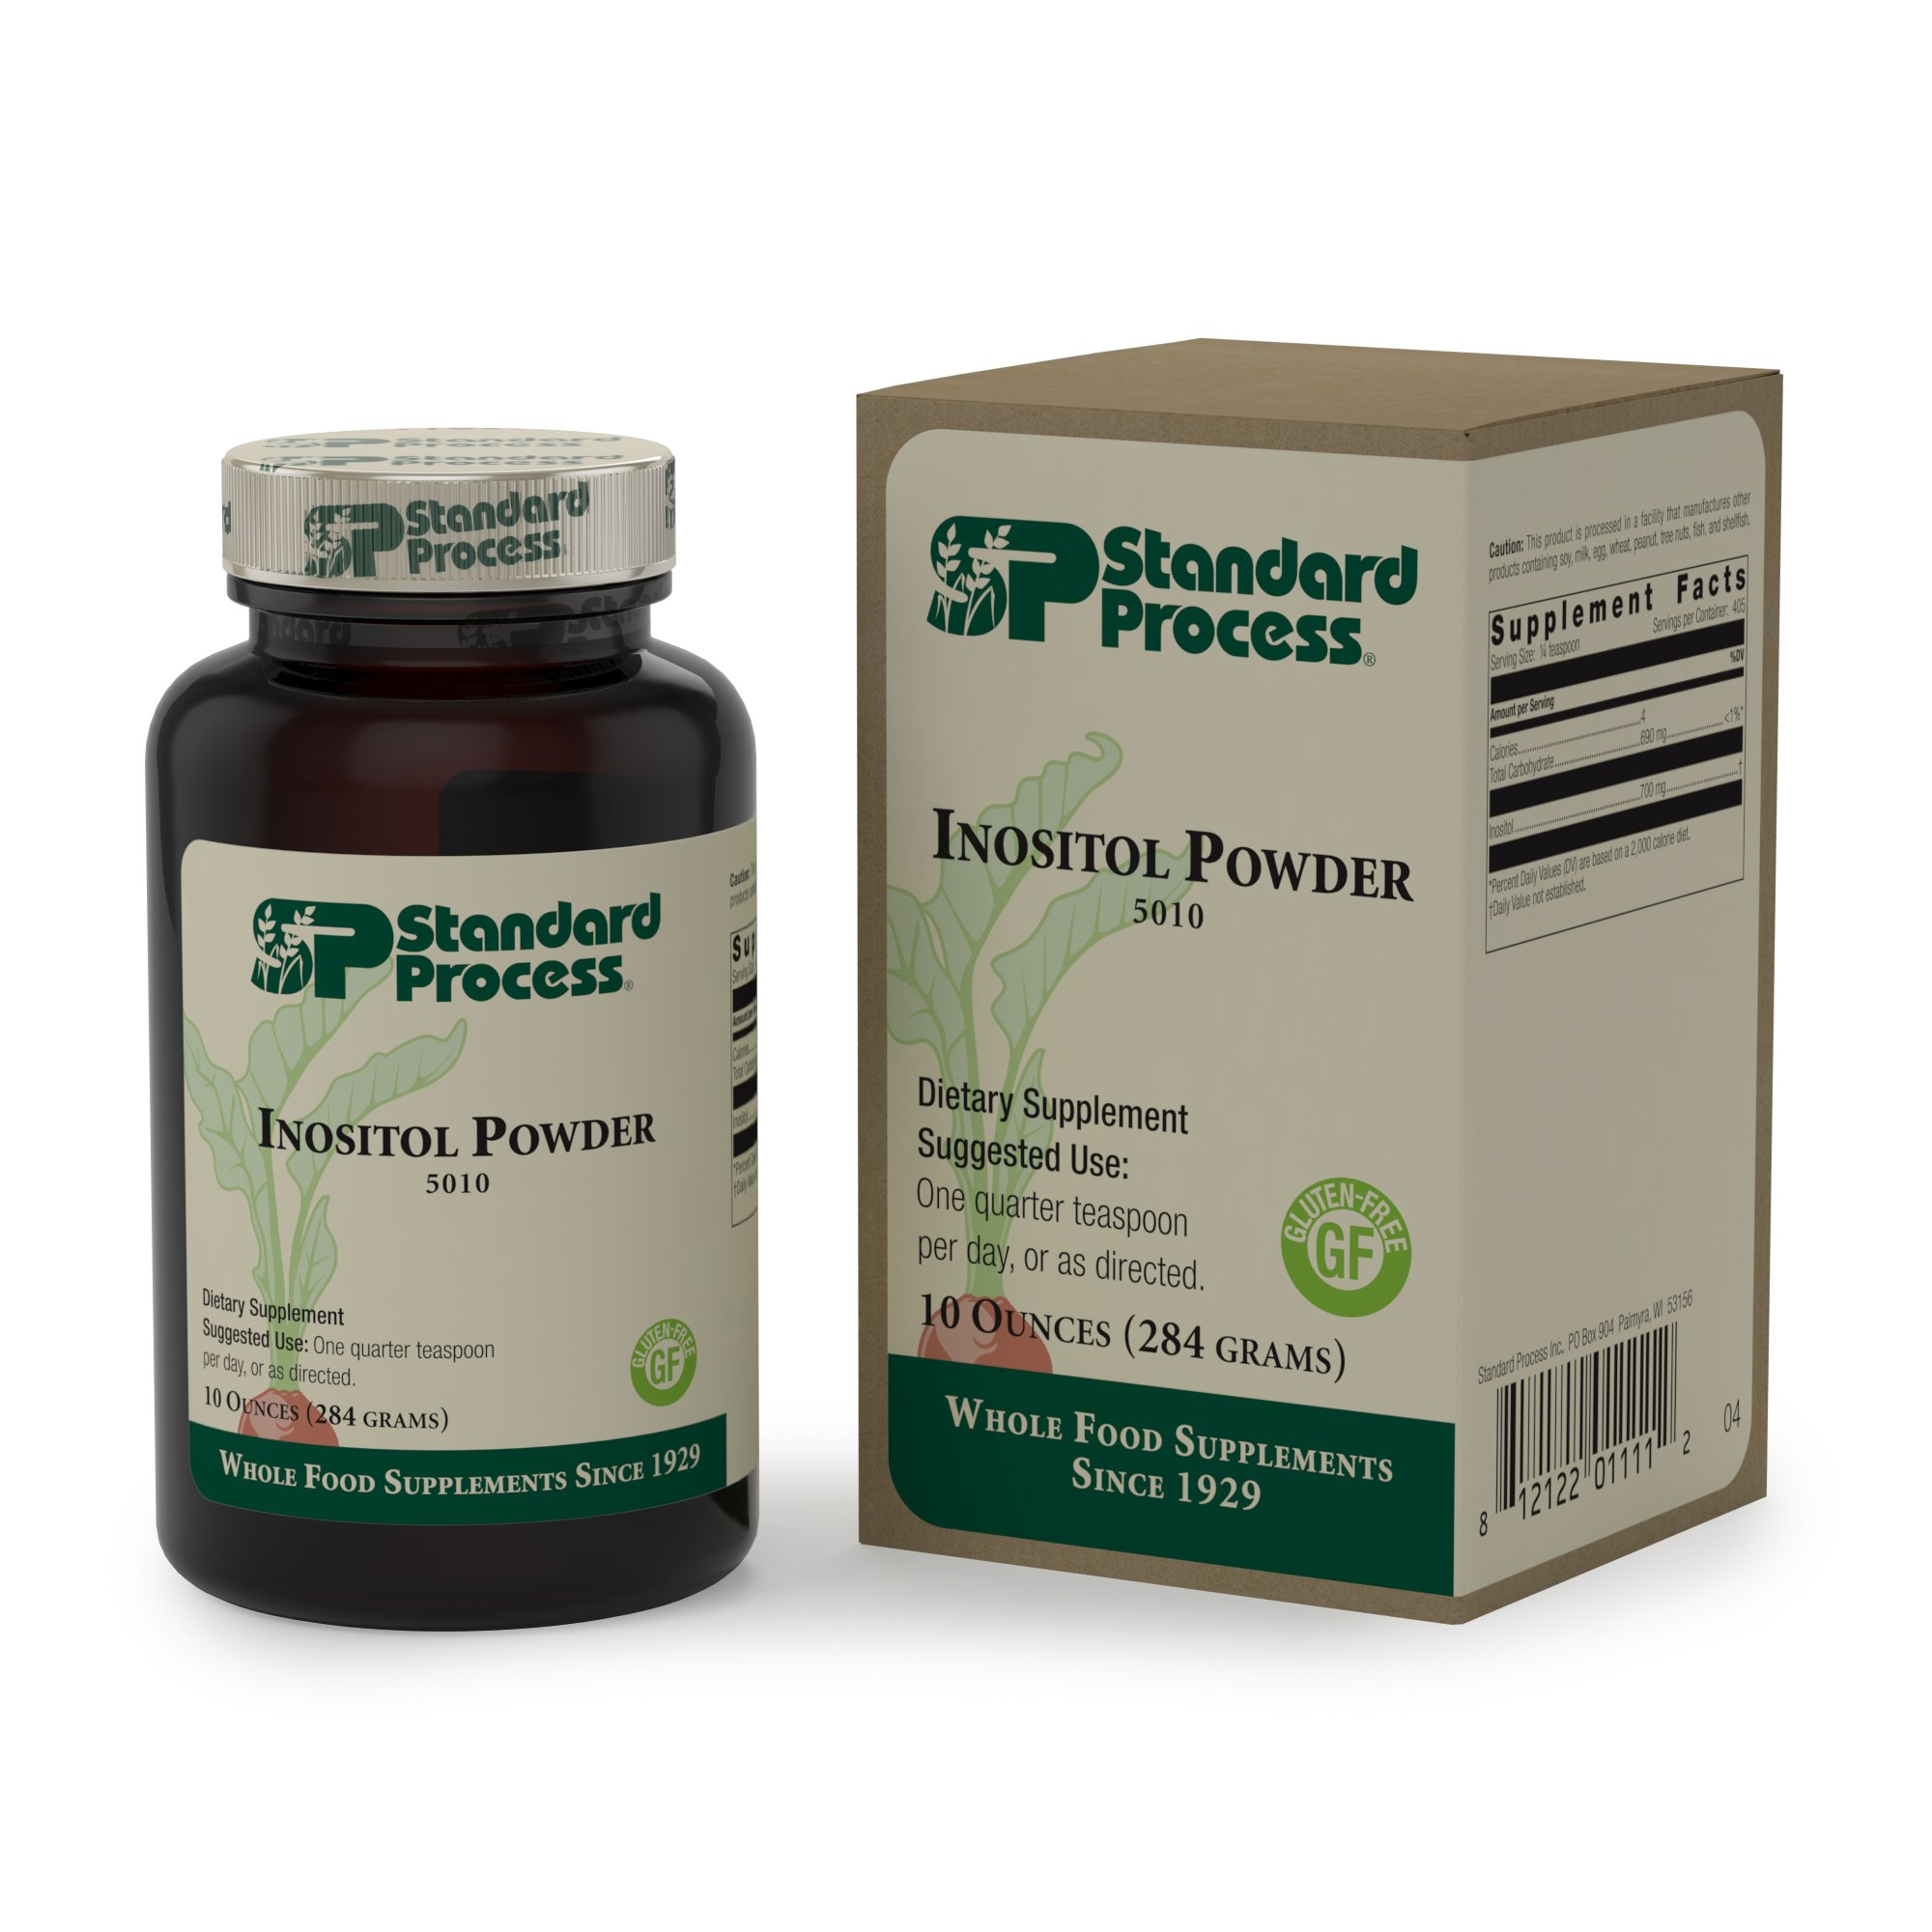 Standard Process - Inositol Powder - Cardiovascular and Nervous System Supplement, Supports Healthy Cell Membrane Integrity, Normal Liver Fat Processing, Gluten Free and Vegetarian - 10 oz Powder